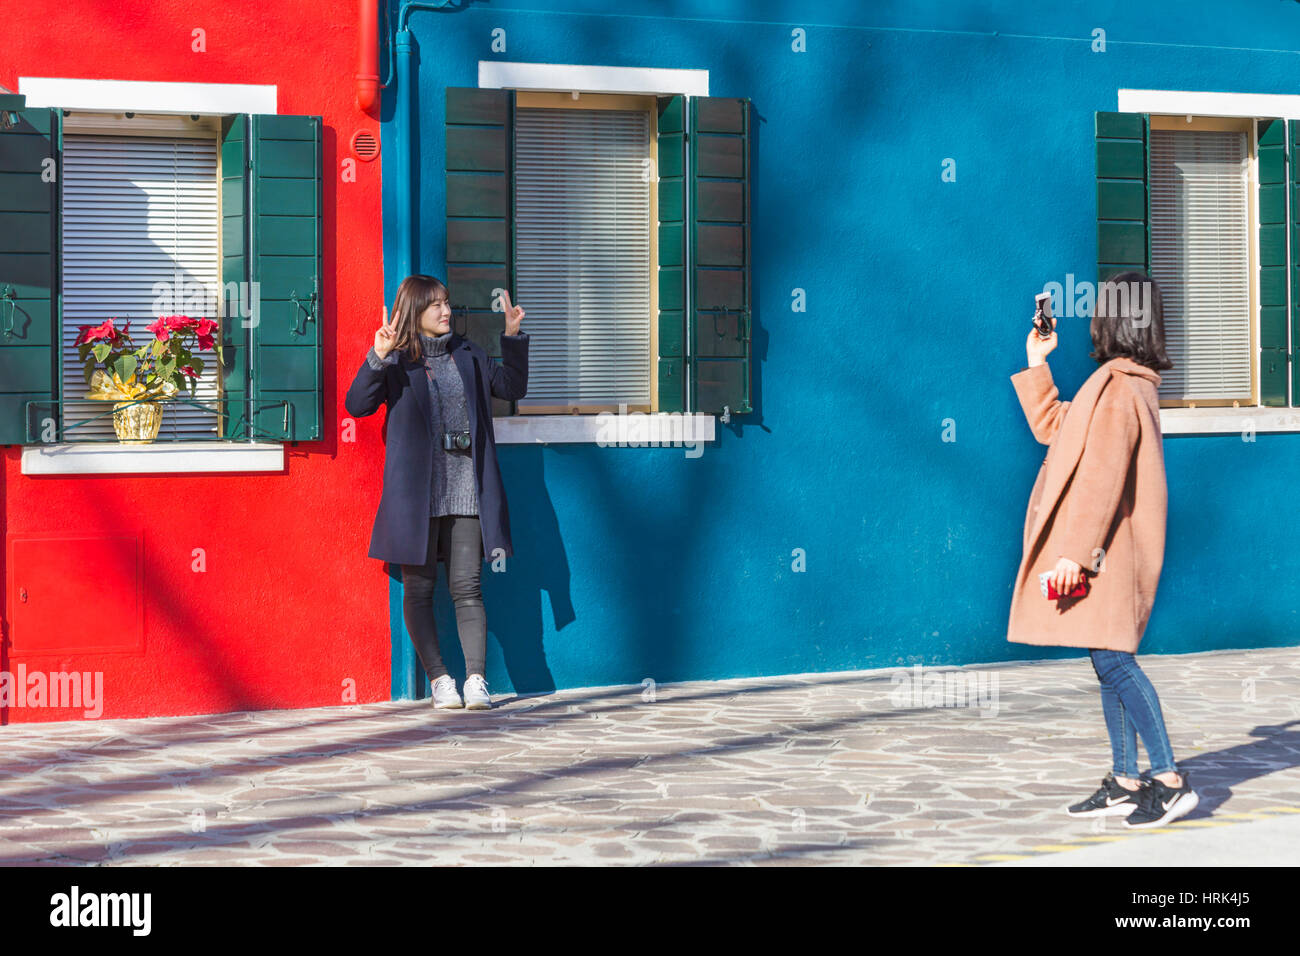 Female tourist poses for a photograph in front of bright blue and red houses at Burano - bright colors of Burano, Stock Photo